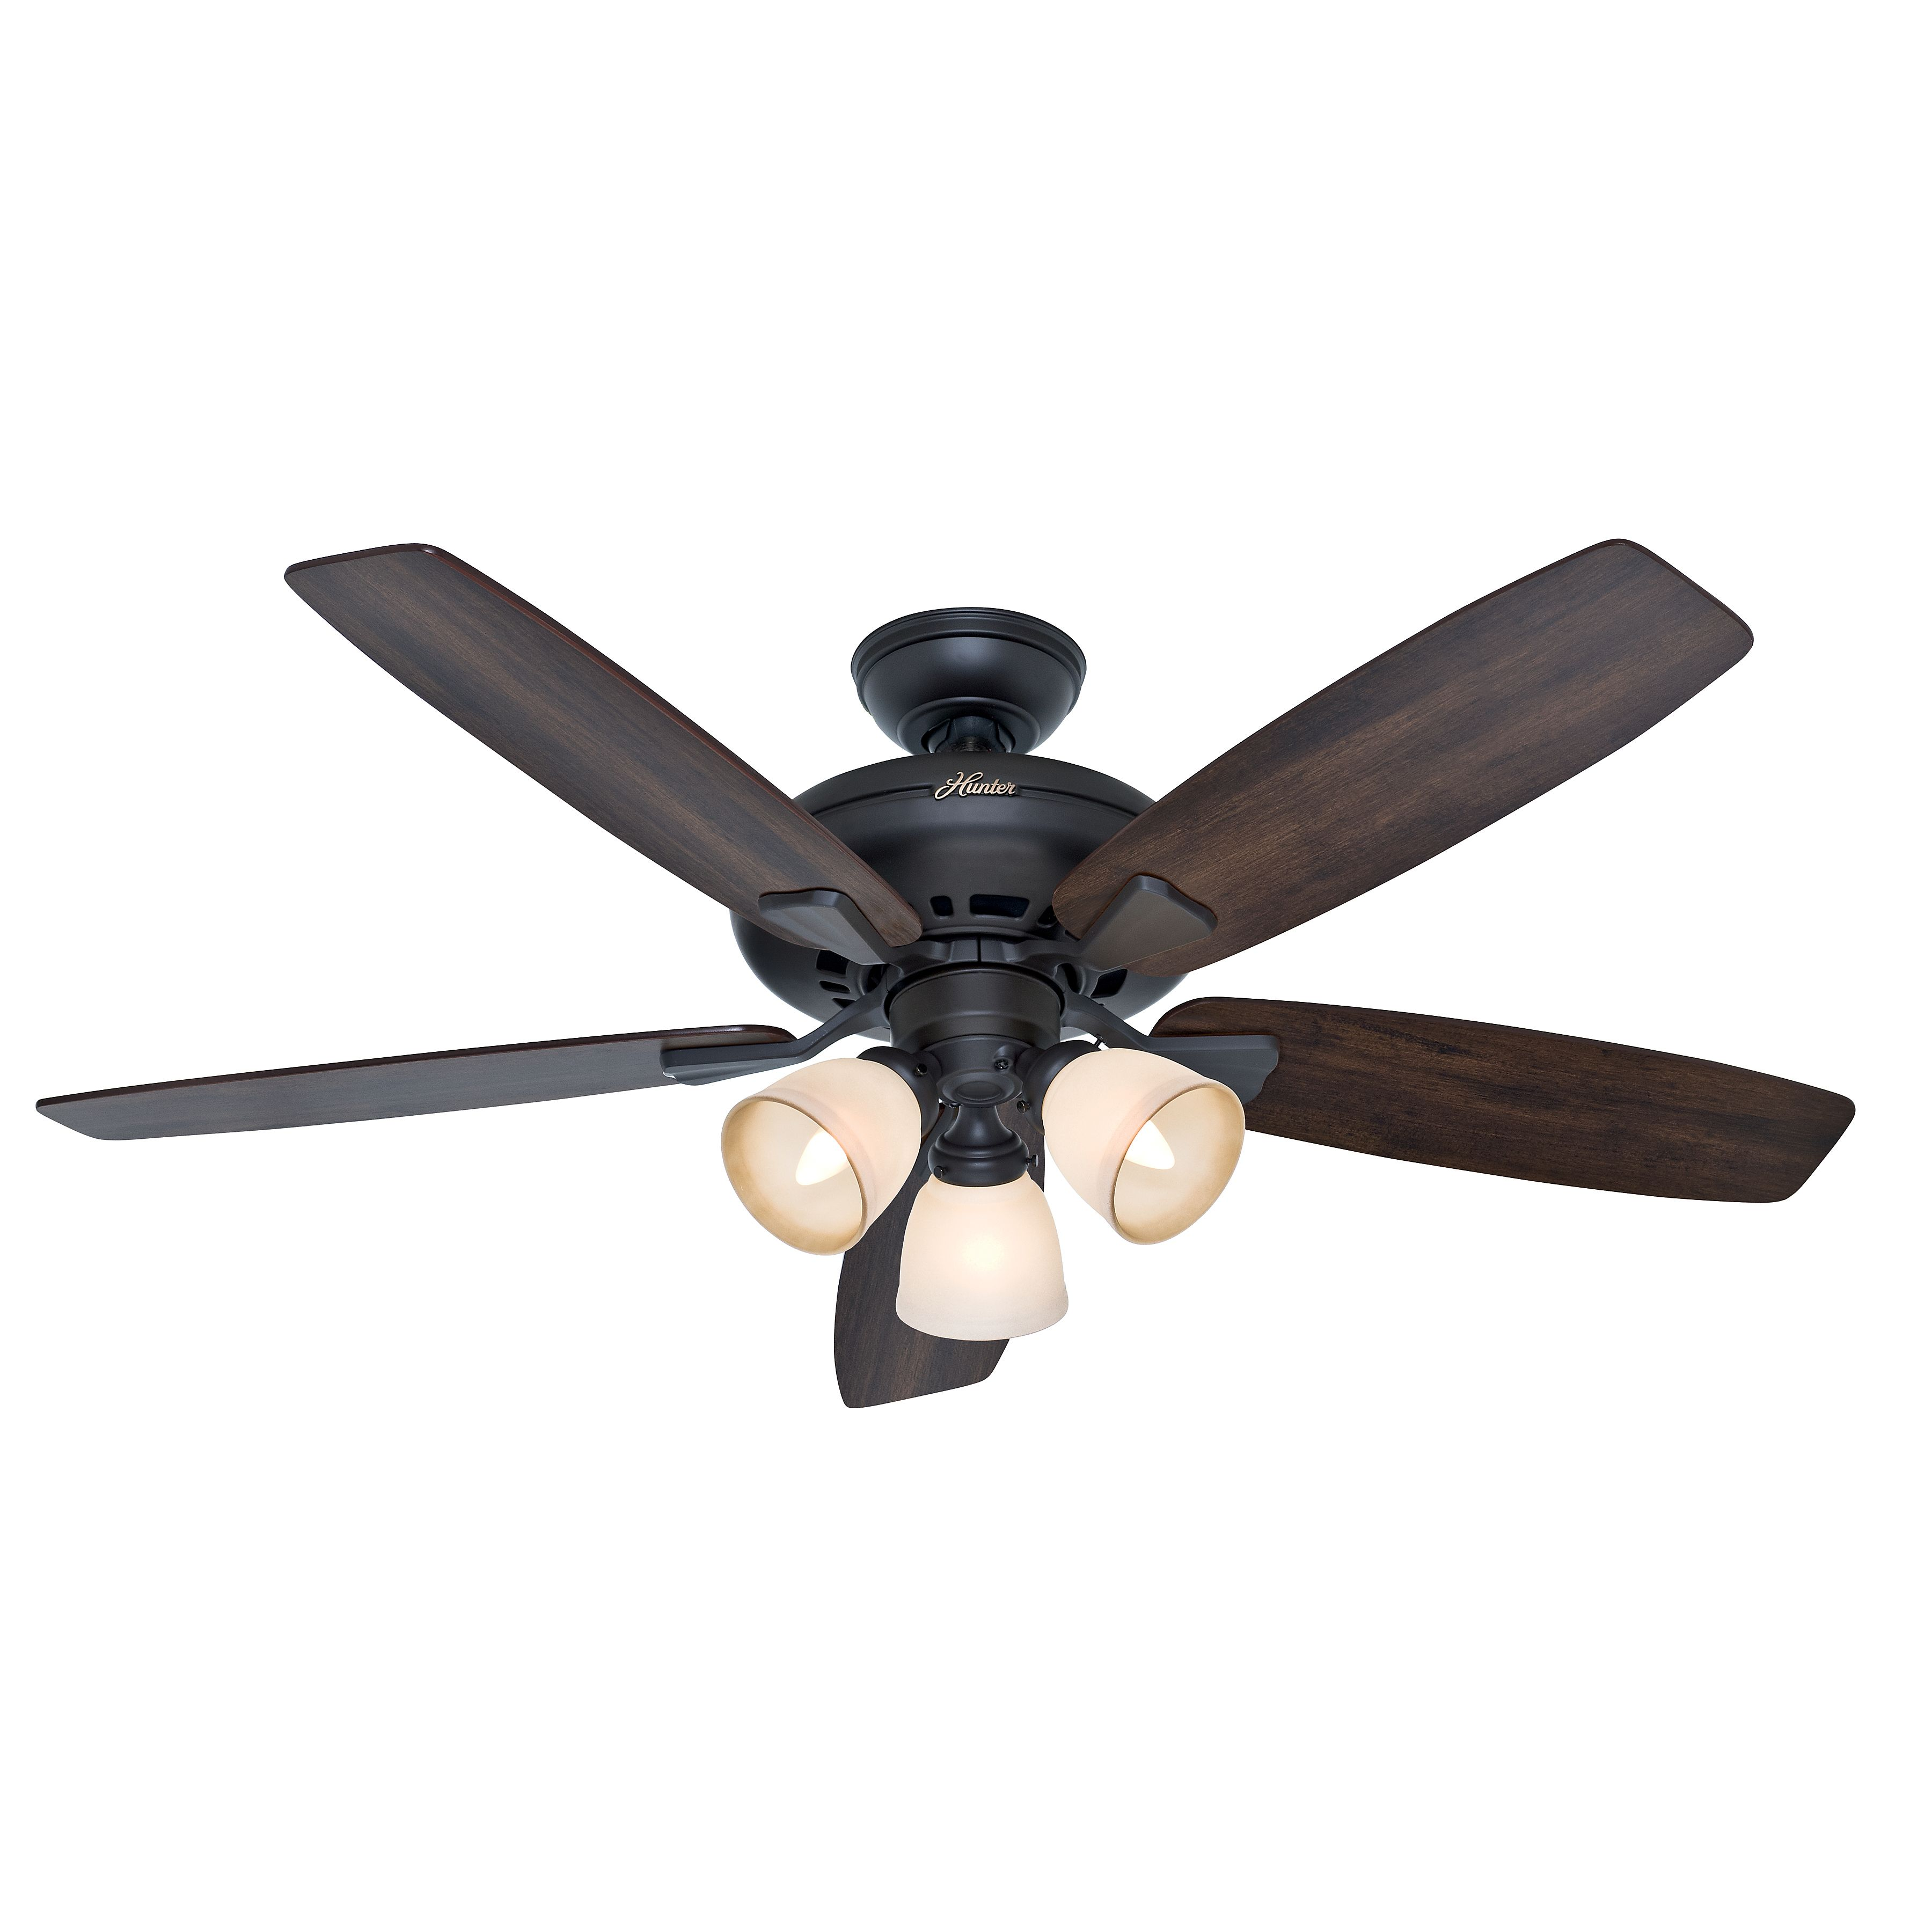 Hunter Fan 52 New Bronze Finish With Frosted Pearl Glass Light Kit Certified Refurbished Ceiling Fan With Light Hunter Ceiling Fans Ceiling Fan